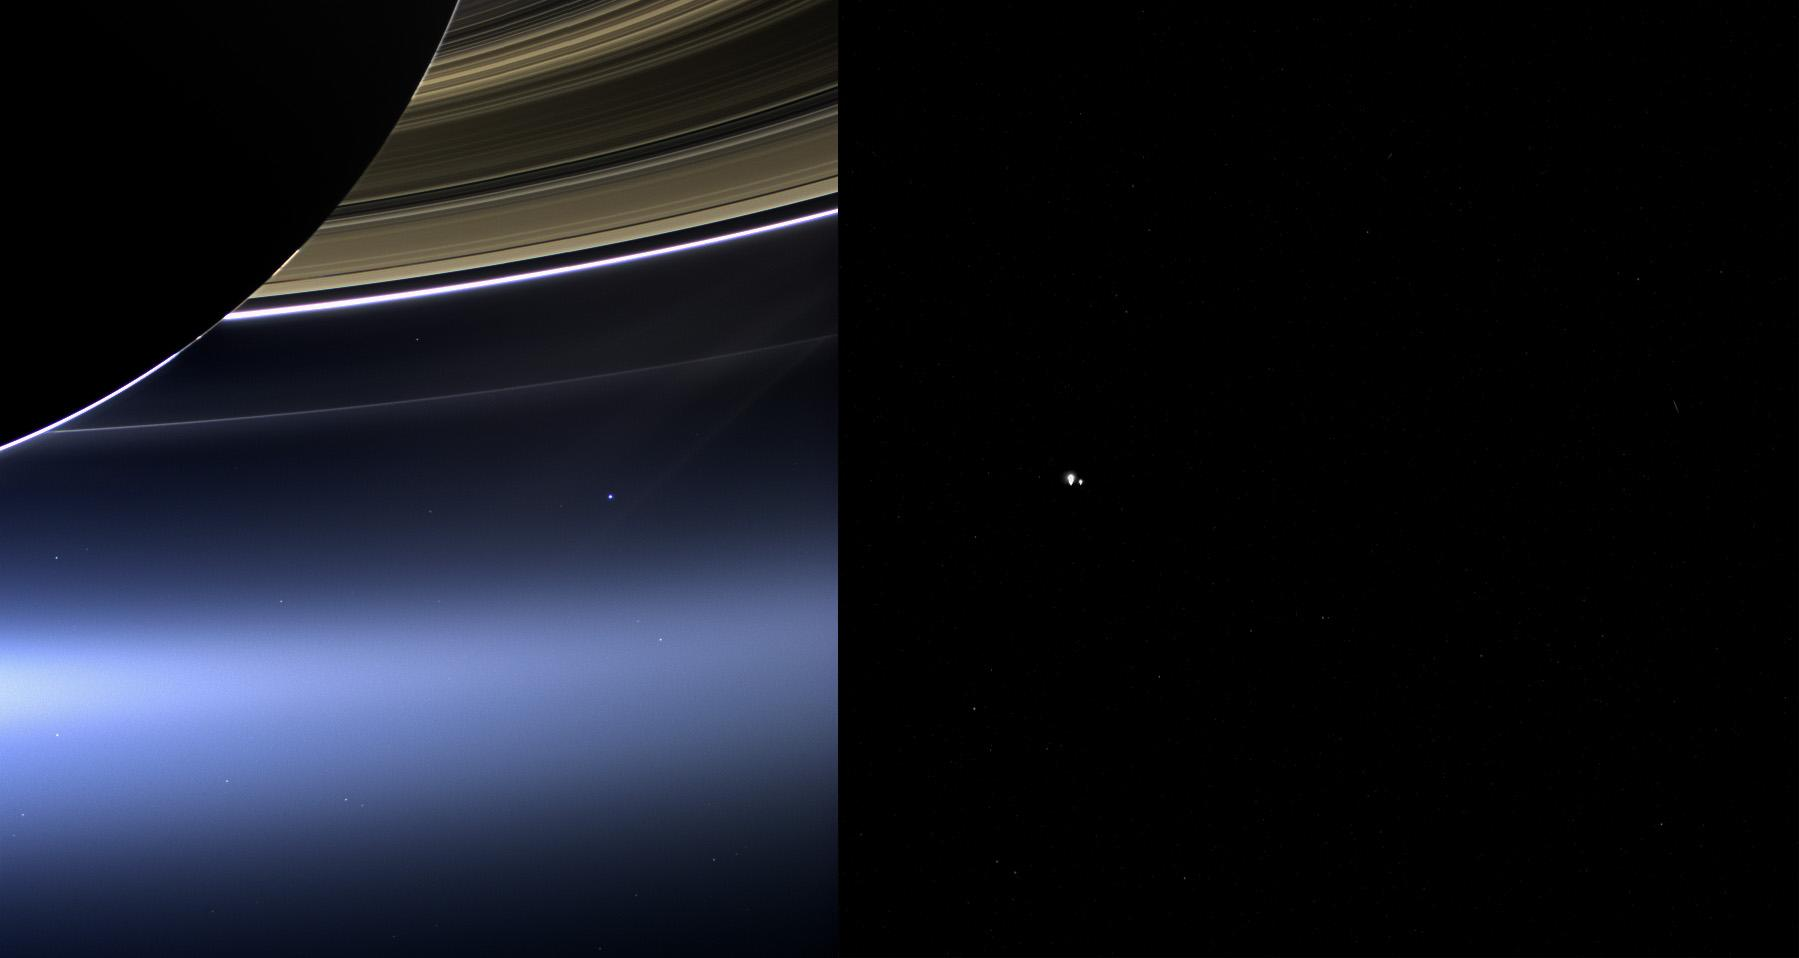 Earth from Cassini and MESSENGER